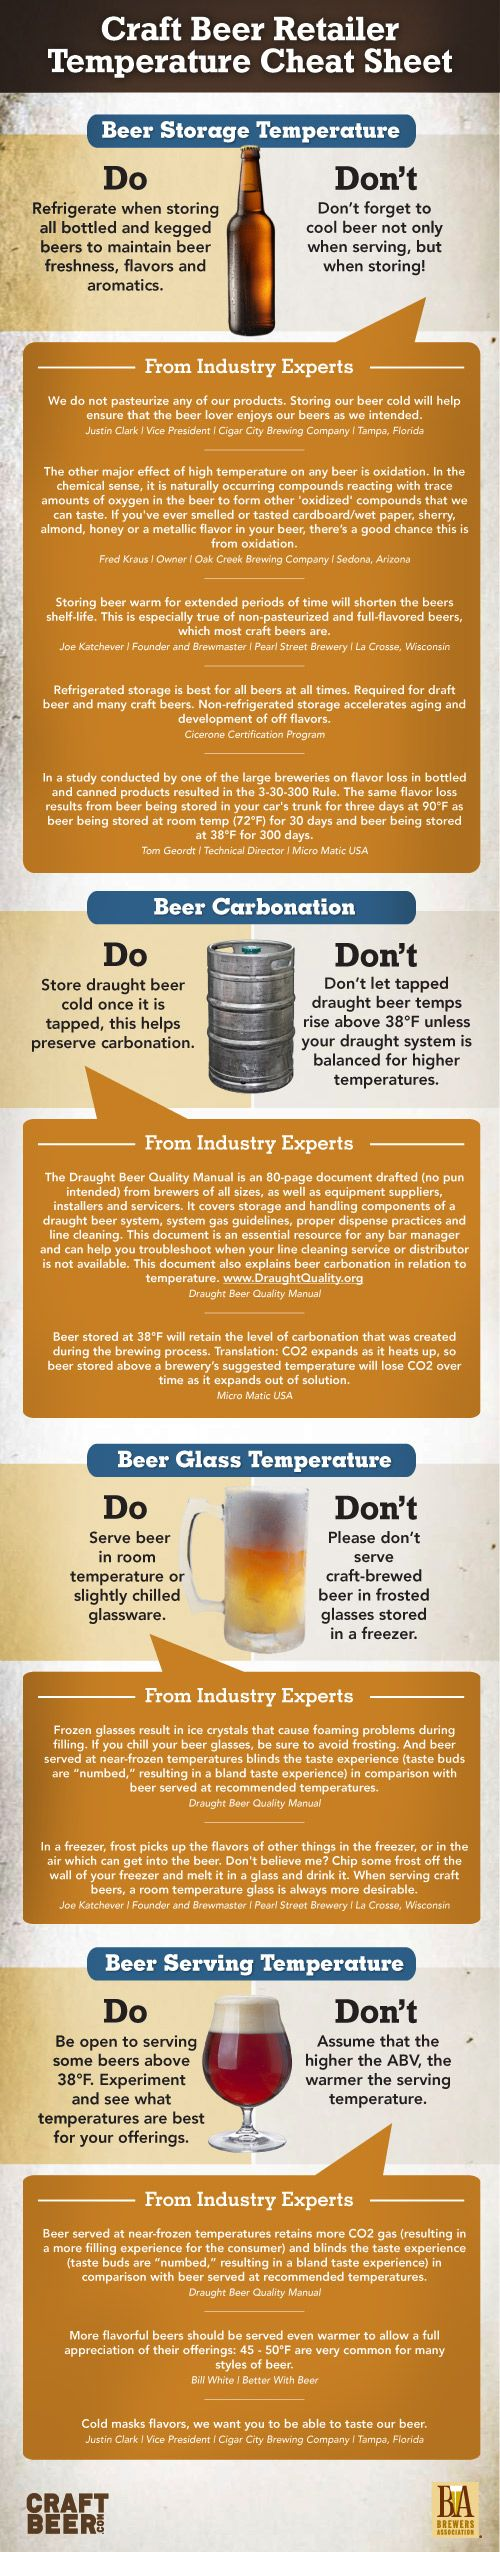 CraftBeer.com | Frosted Glassware Is Not Cool: Temperature Tips for Craft Beer Retailers